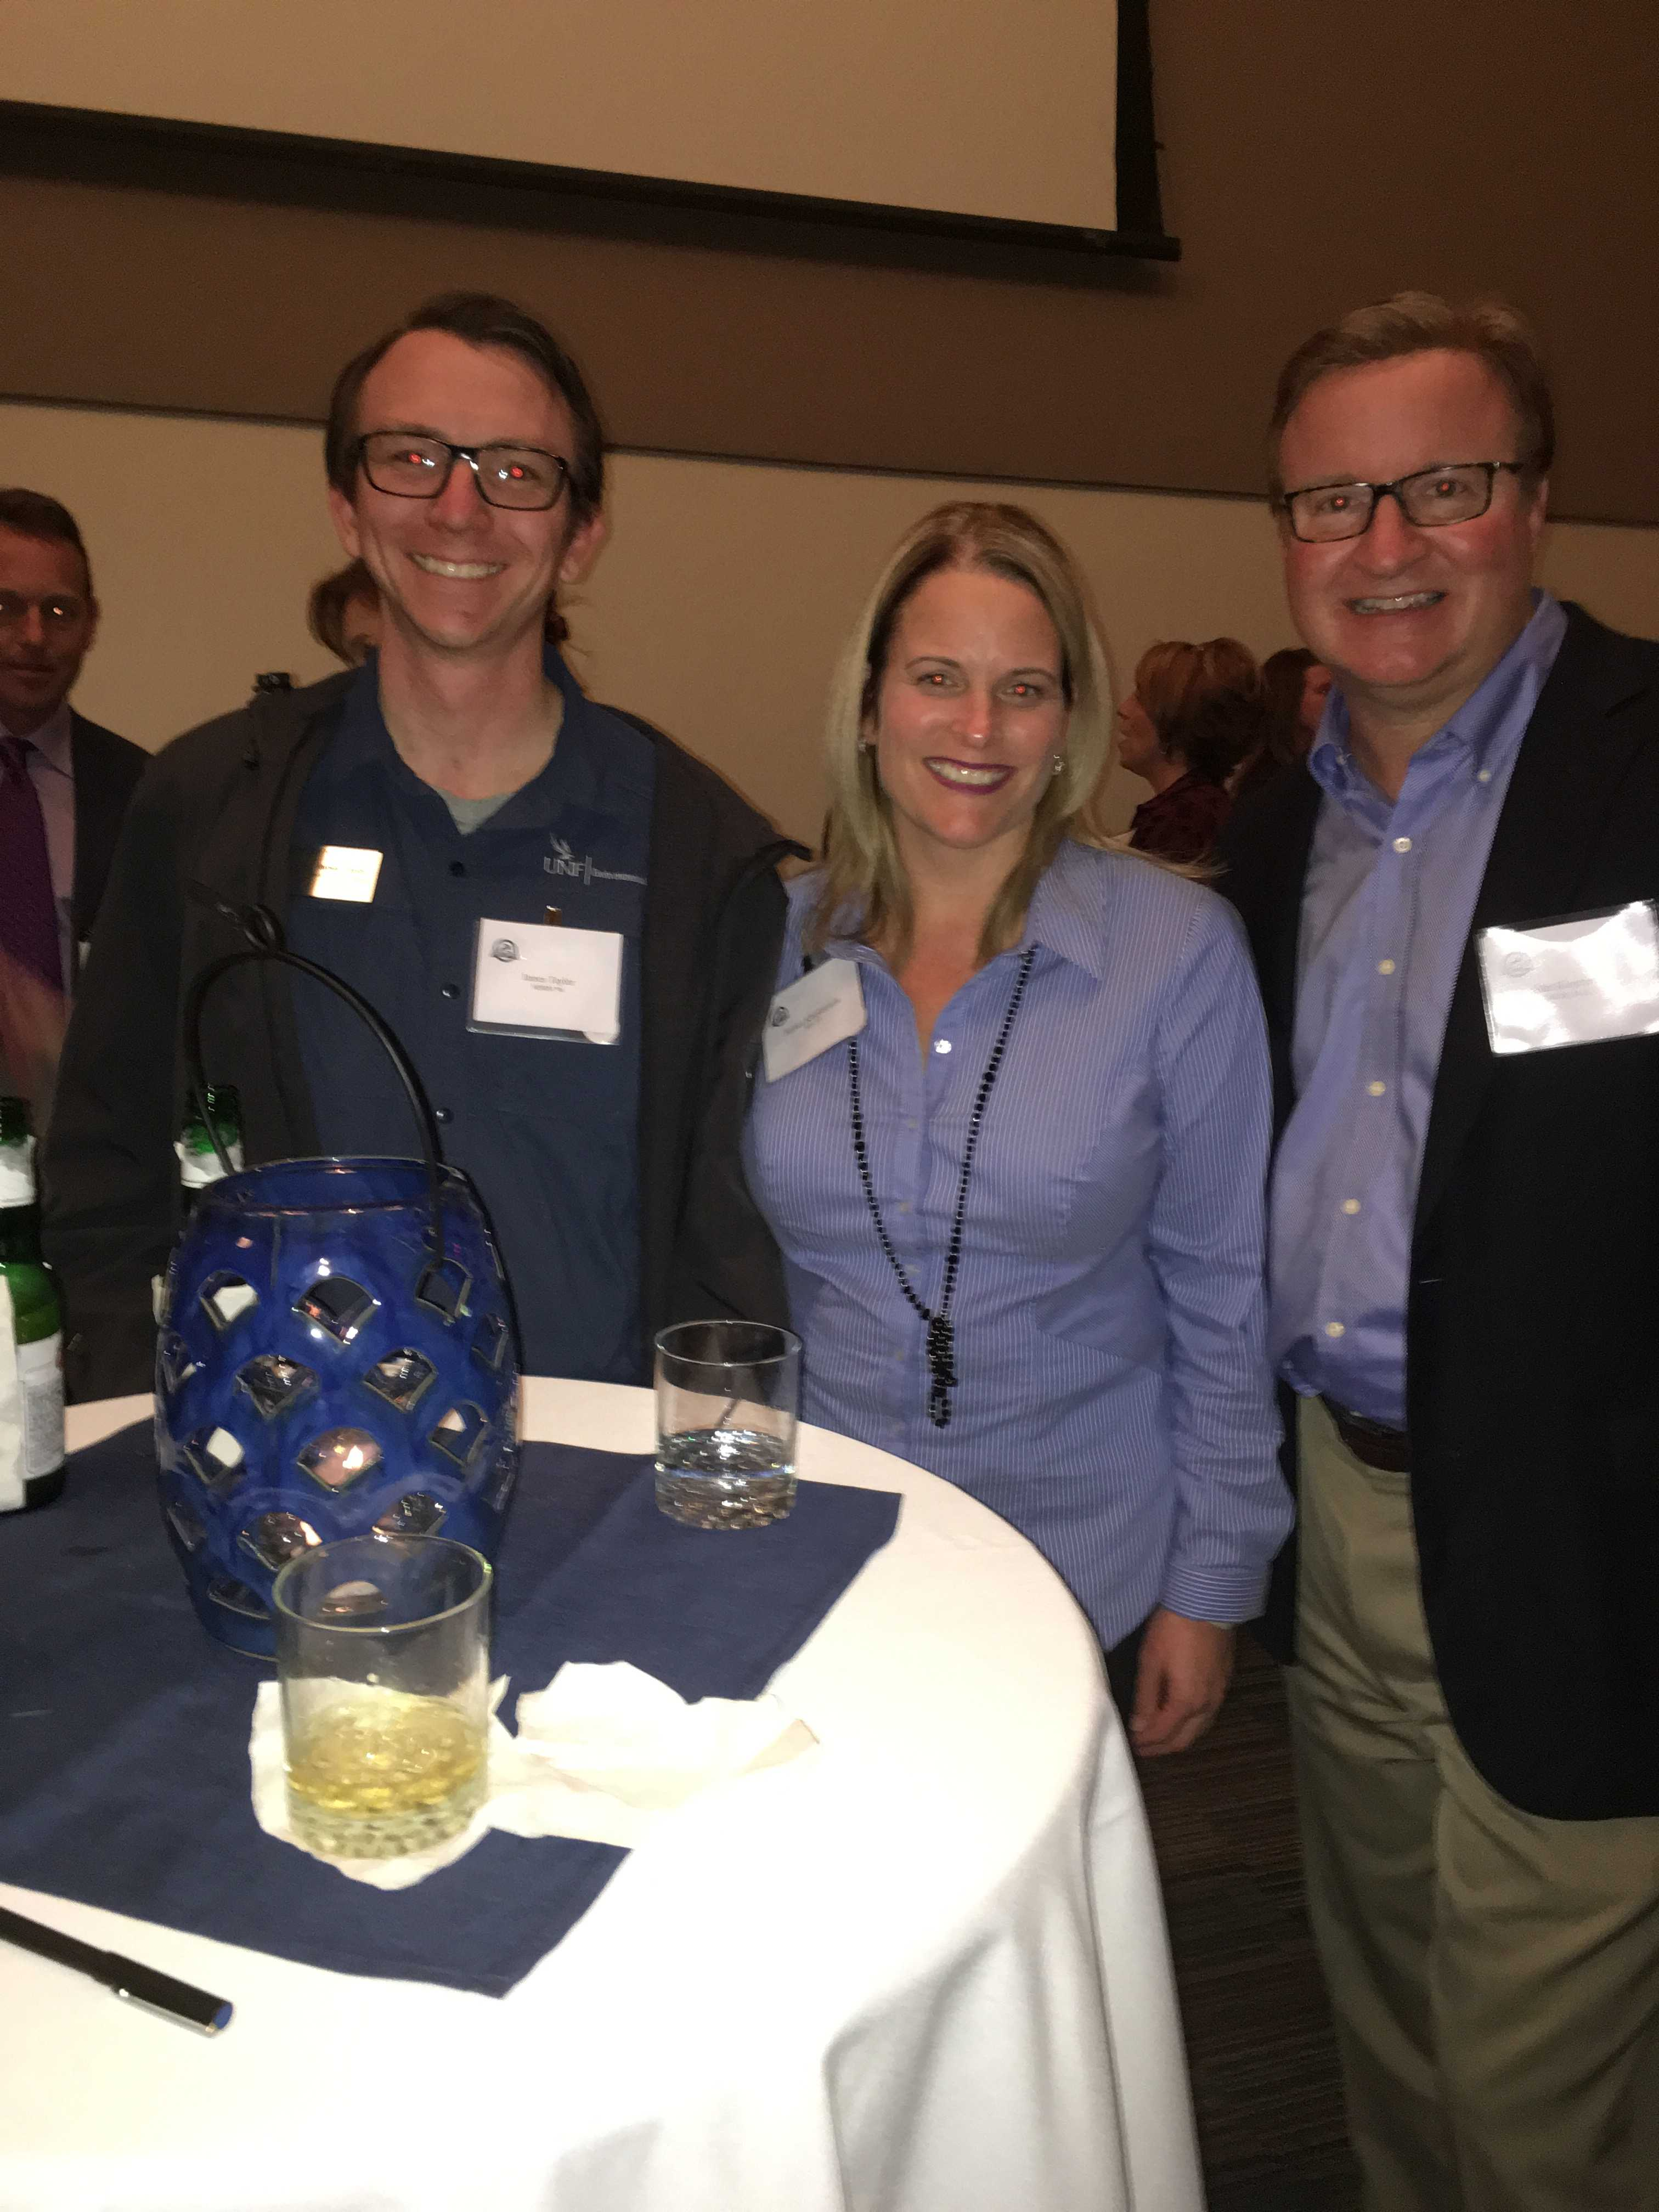 UNF Alumni James Taylor, Jessica Klopfstein and John Klopfstein enjoy the cocktail reception before the ceremony. Photo by Jordan Bebout